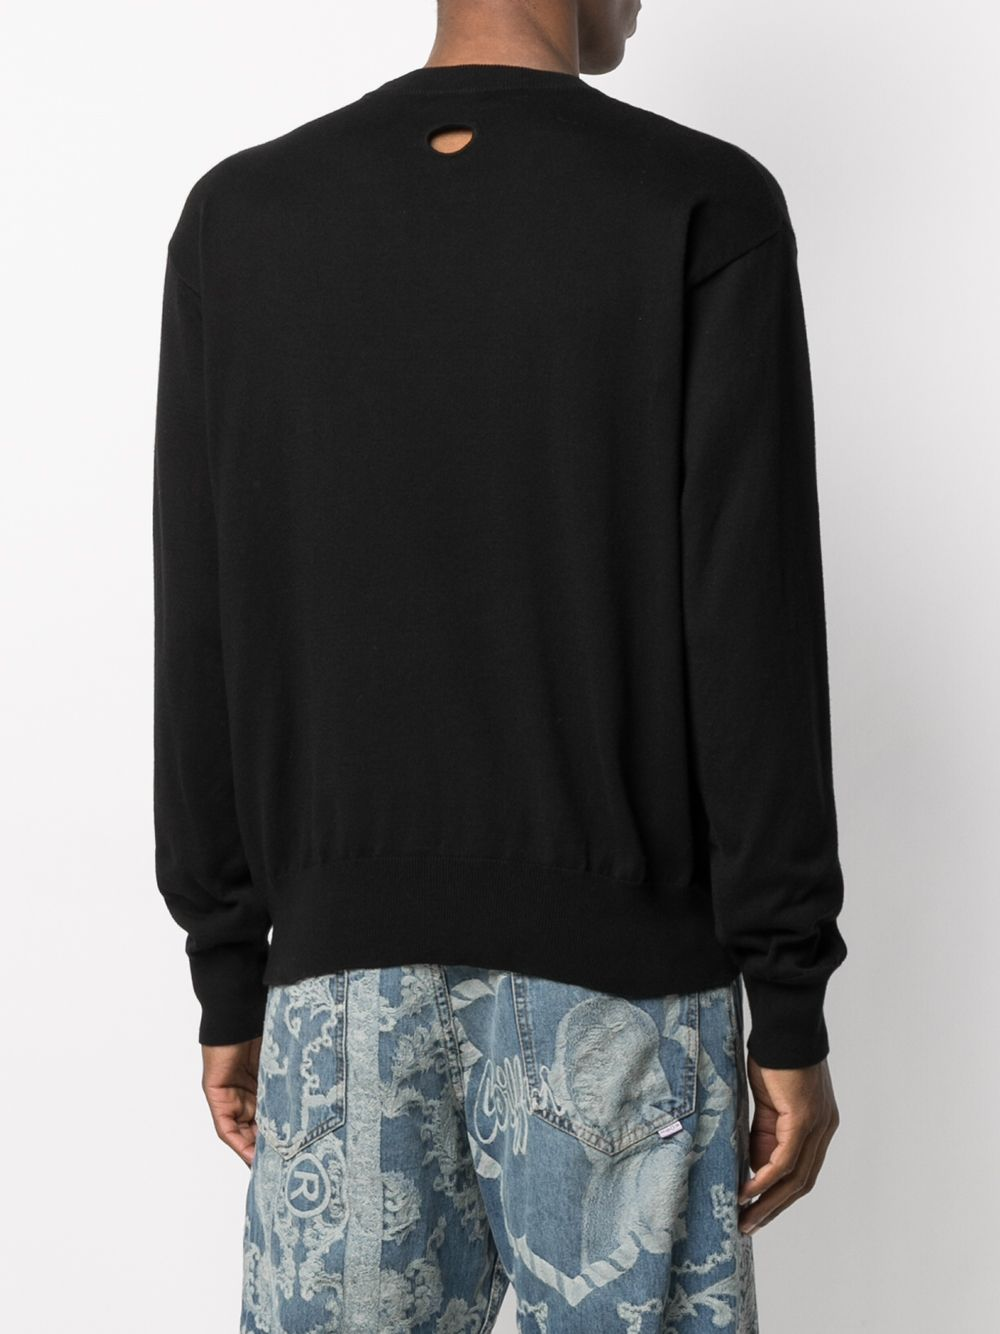 OFF-WHITE MEN OW LOGO BASIC KNIT CREWNECK